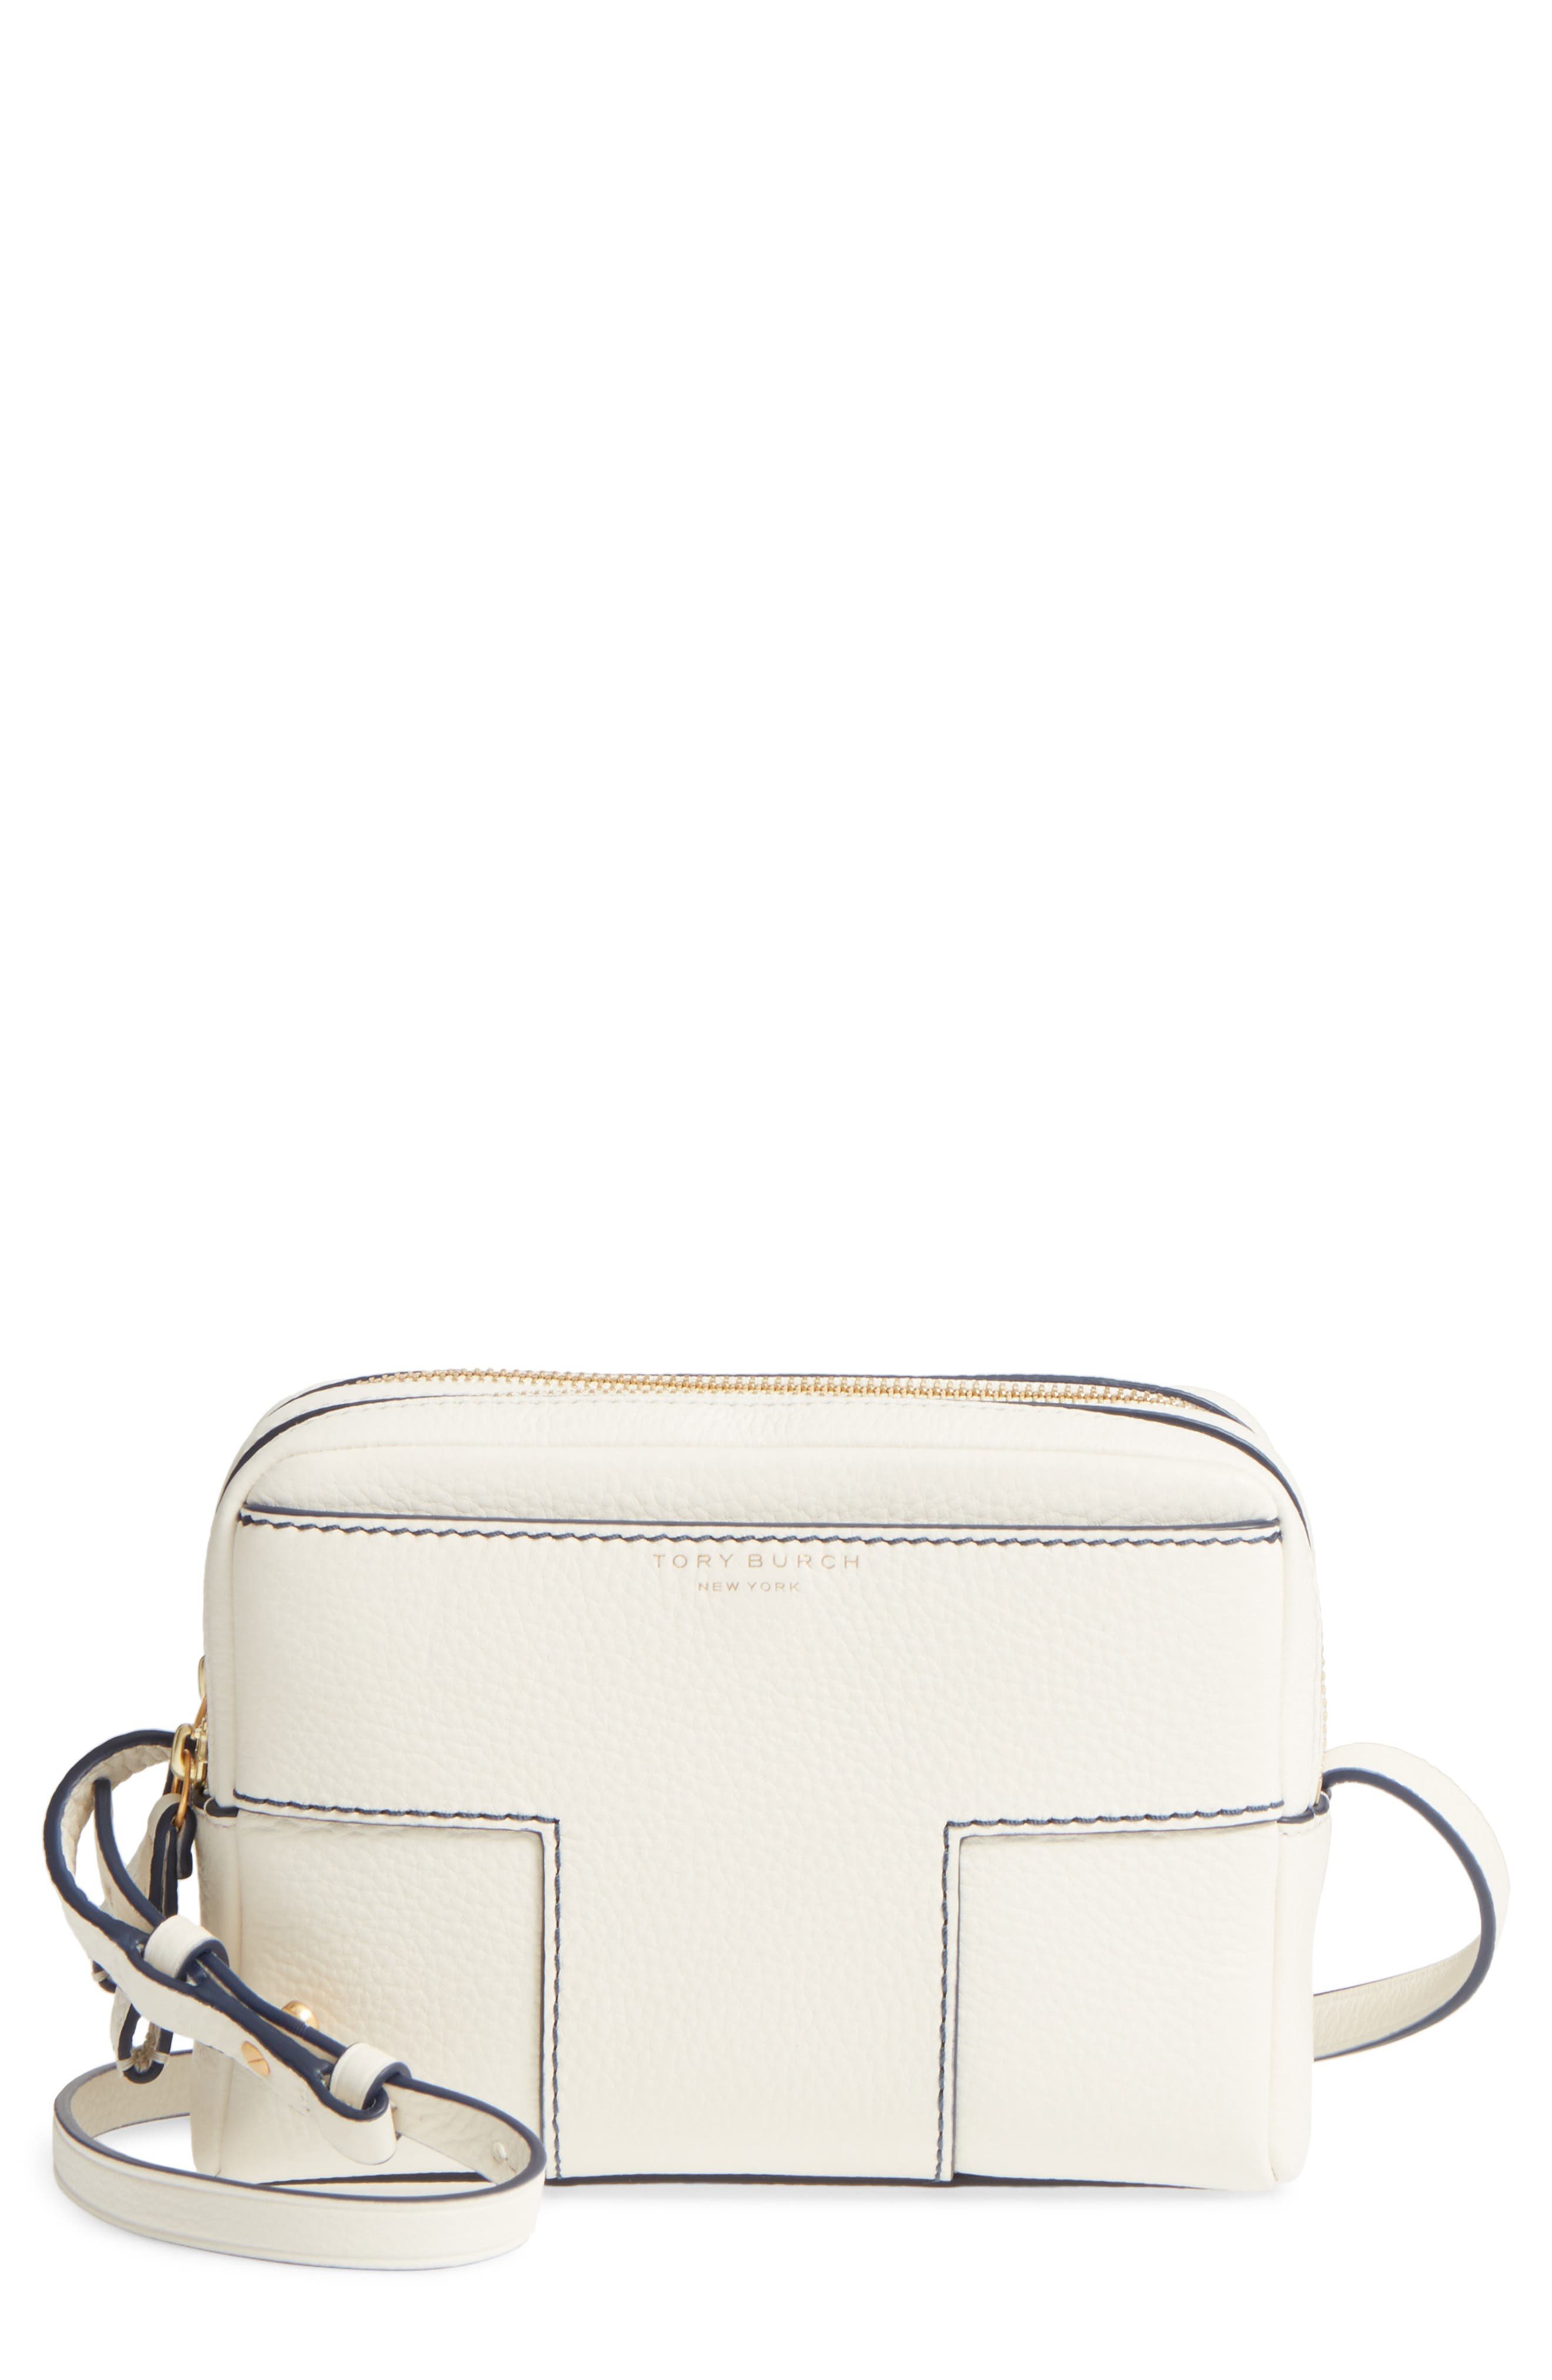 Tory Burch Block-T Double Zip Leather Crossbody Bag